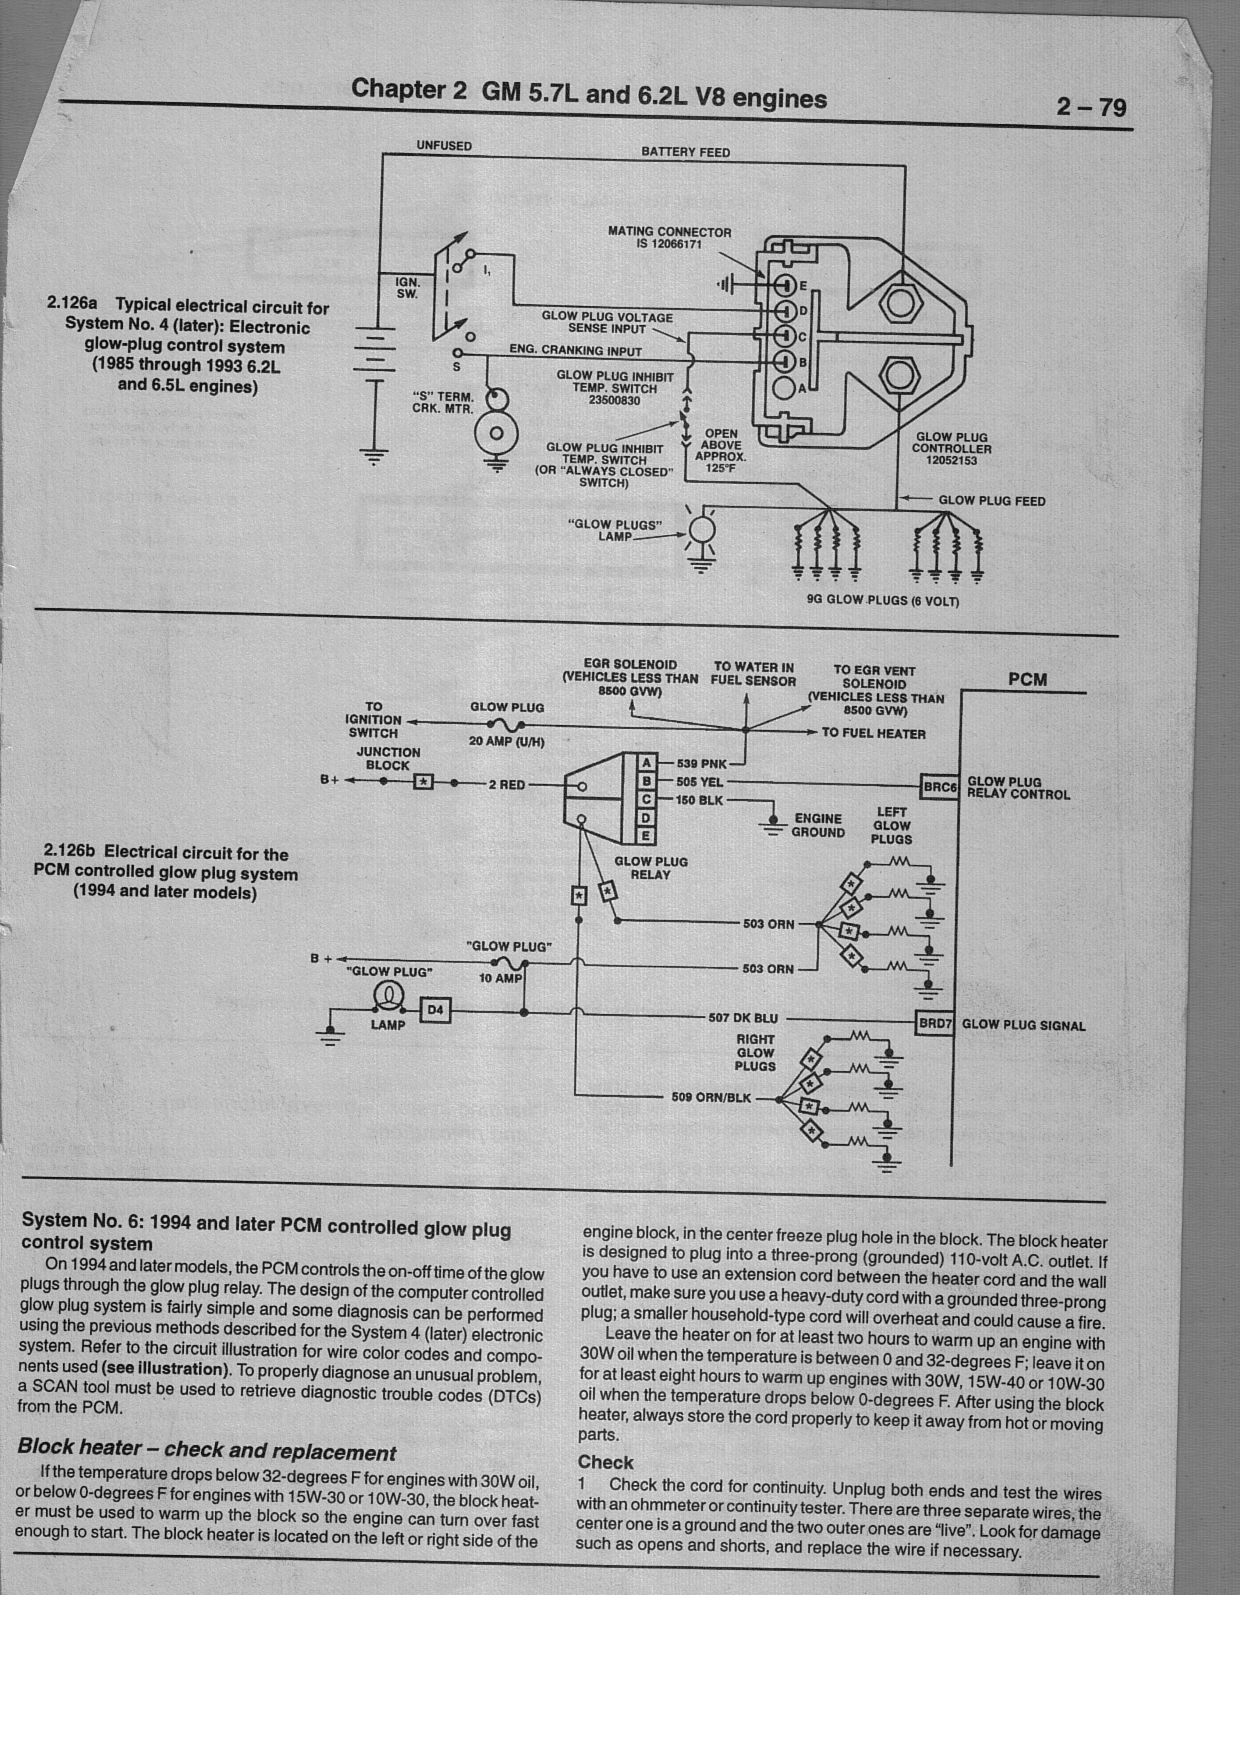 Gm Glow Plug Wiring Detailed Schematics Diagram 6 Based In Atlanta Ga With A 1988 Chevy C30 2 Ltr Engine Turns Wire